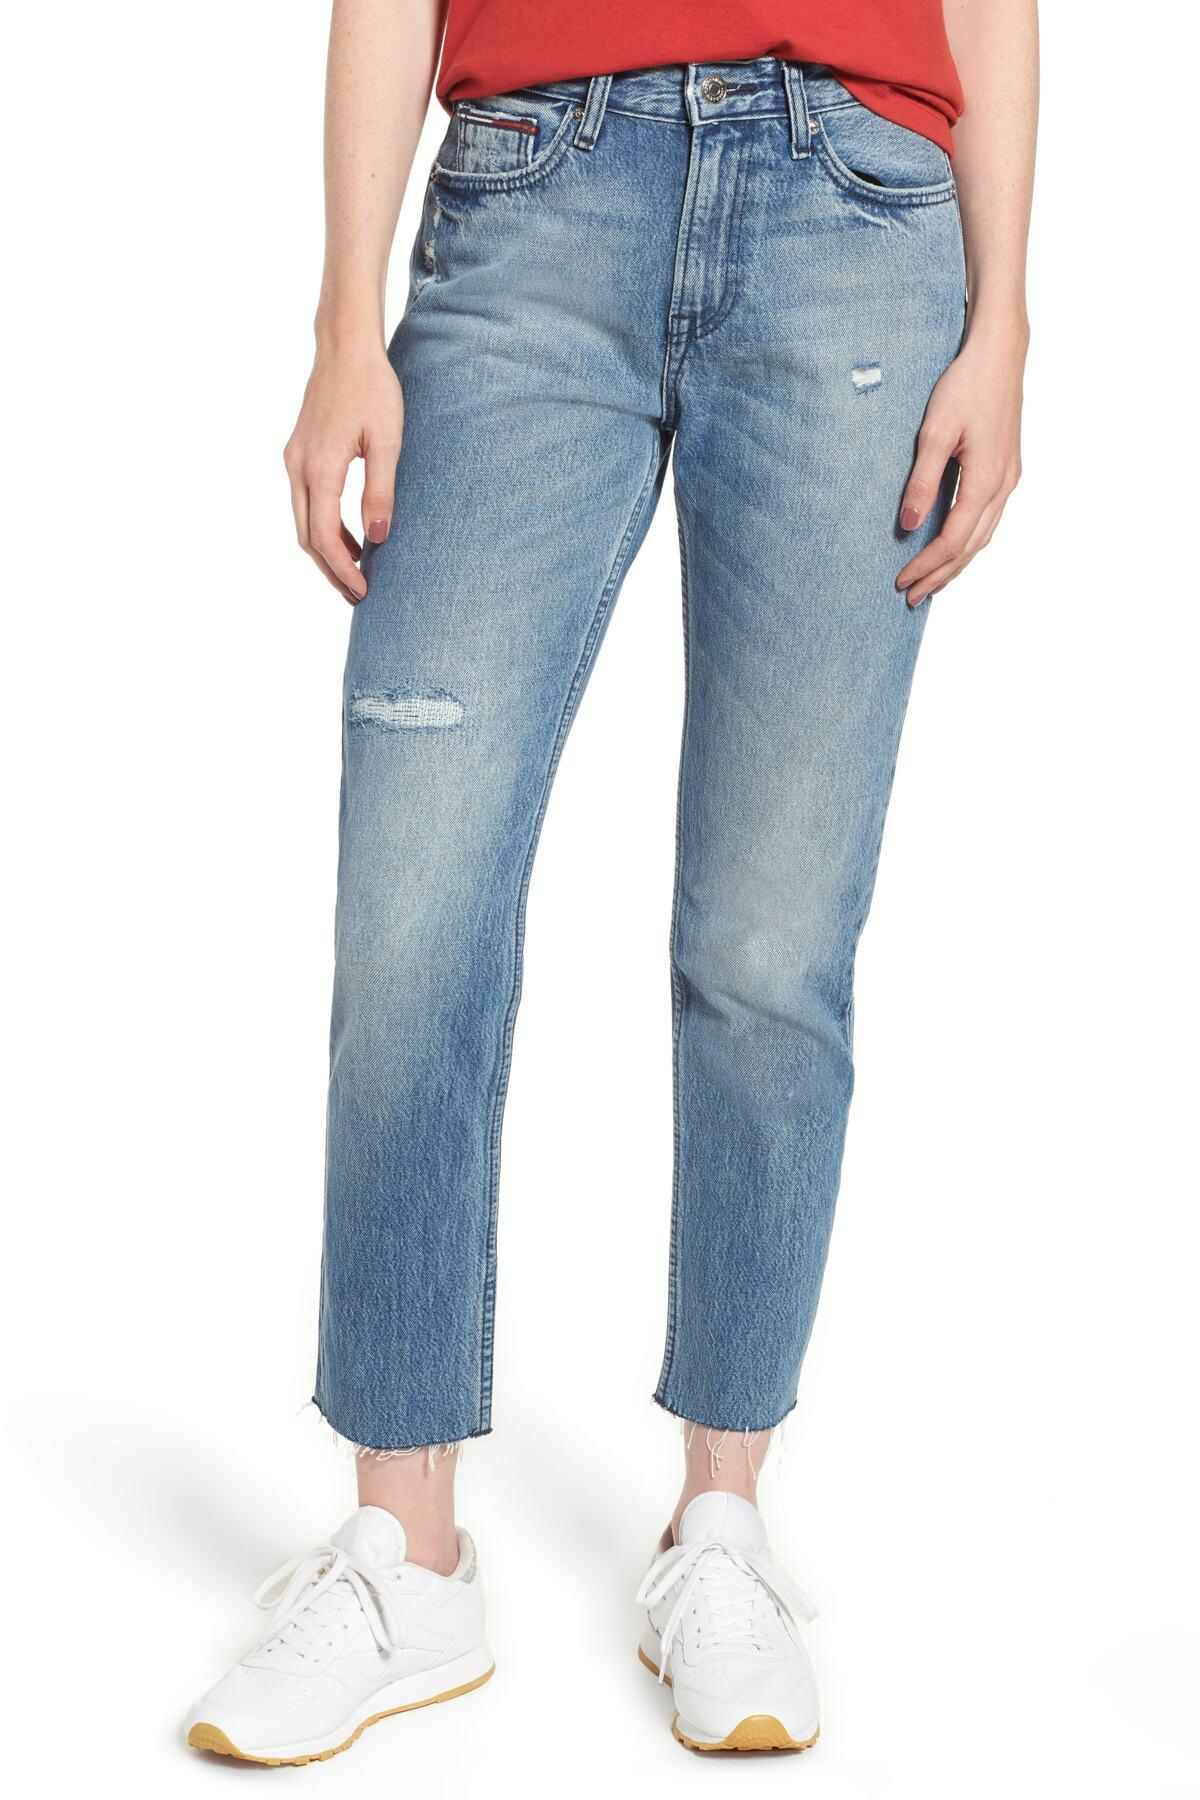 956cf95c Lyst - Tommy Hilfiger Izzy High Rise Slim Jeans in Blue